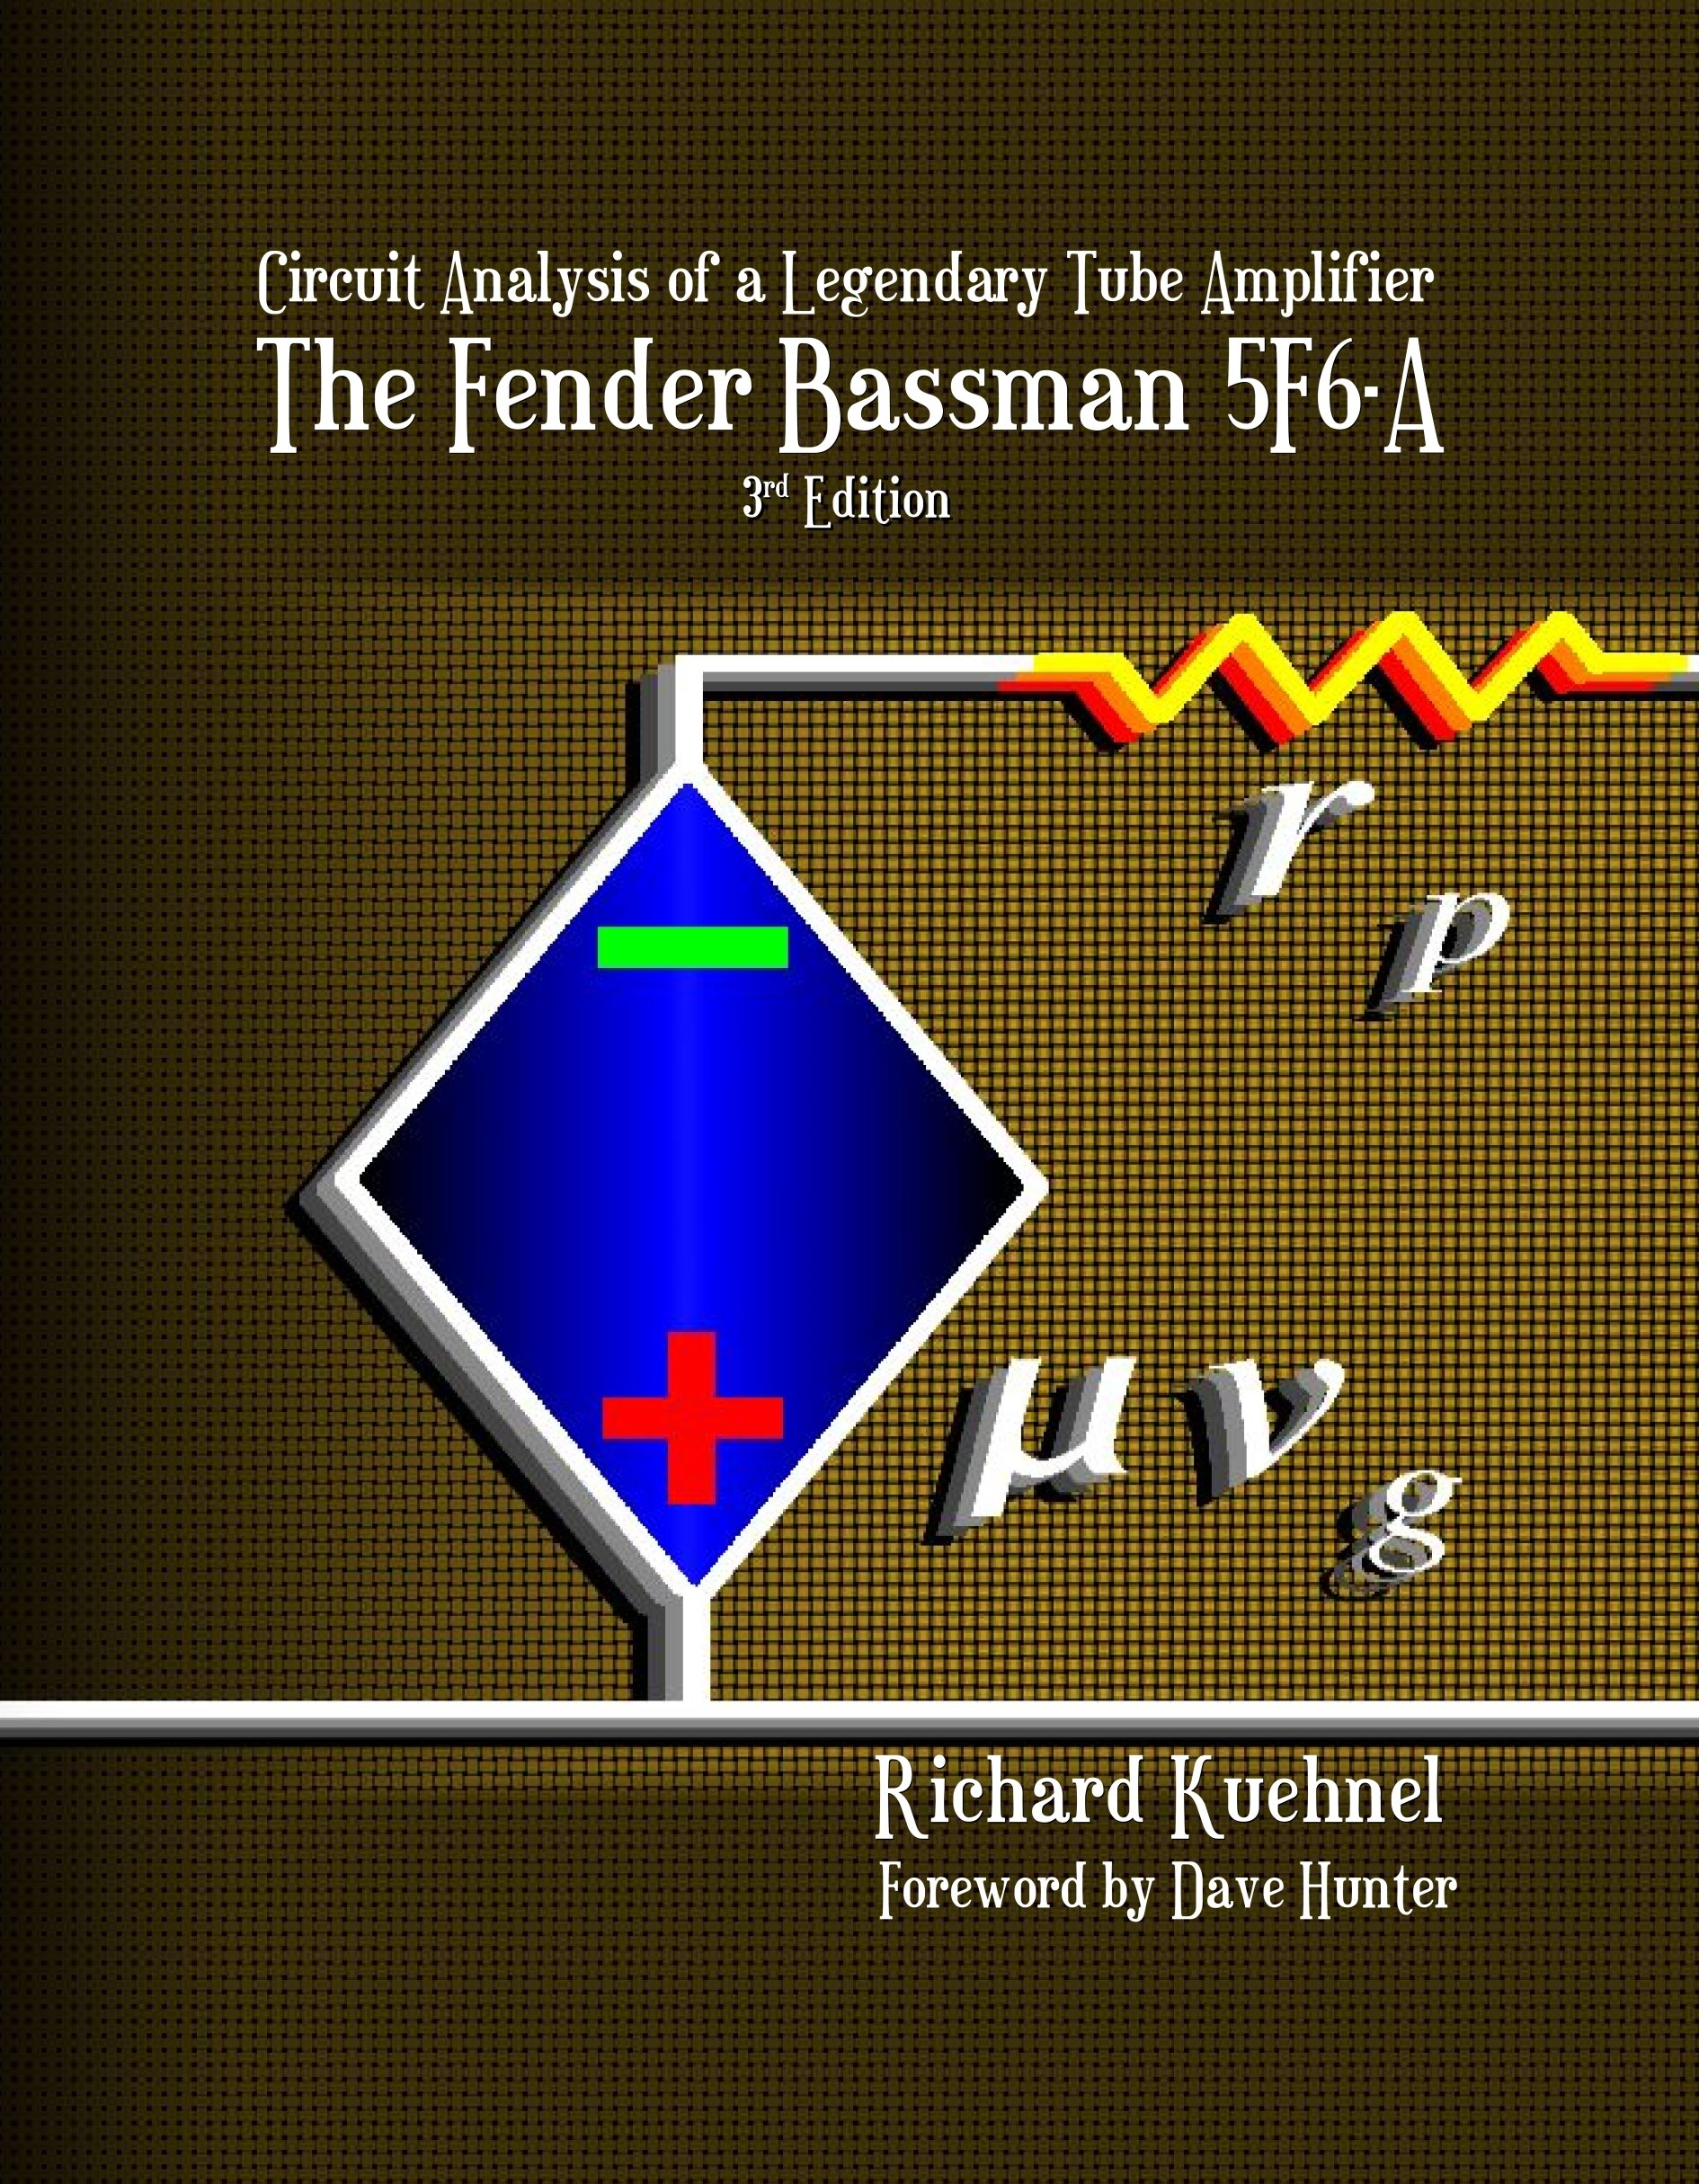 Circuit Analysis Of A Legendary Tube Amplifier The Fender Bassman 5f6 Tweed Guitar Effect Schematic Diagram Third Edition Richard Kuehnel 9780976982258 Books